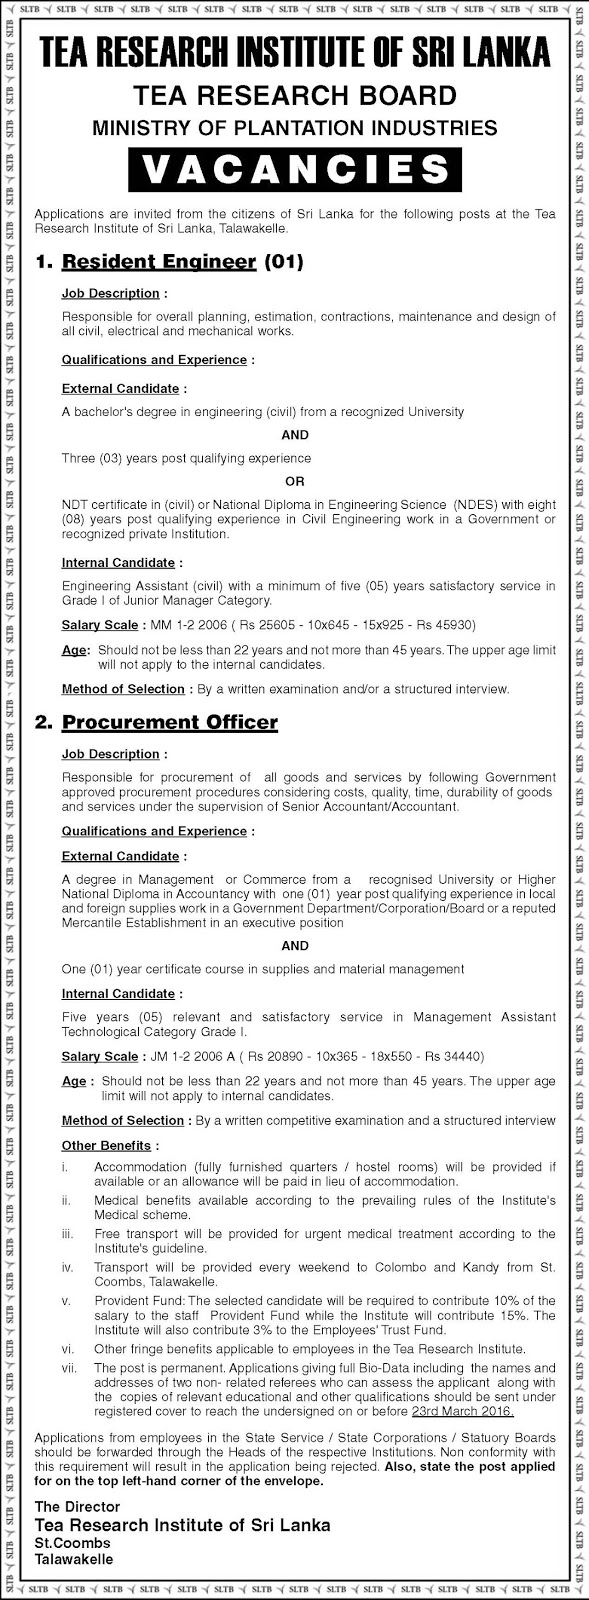 Vacancies - Resident Engineer, Procurement Officer - Tea Research Institute of Sri Lanka - Ministry of Plantation Industries